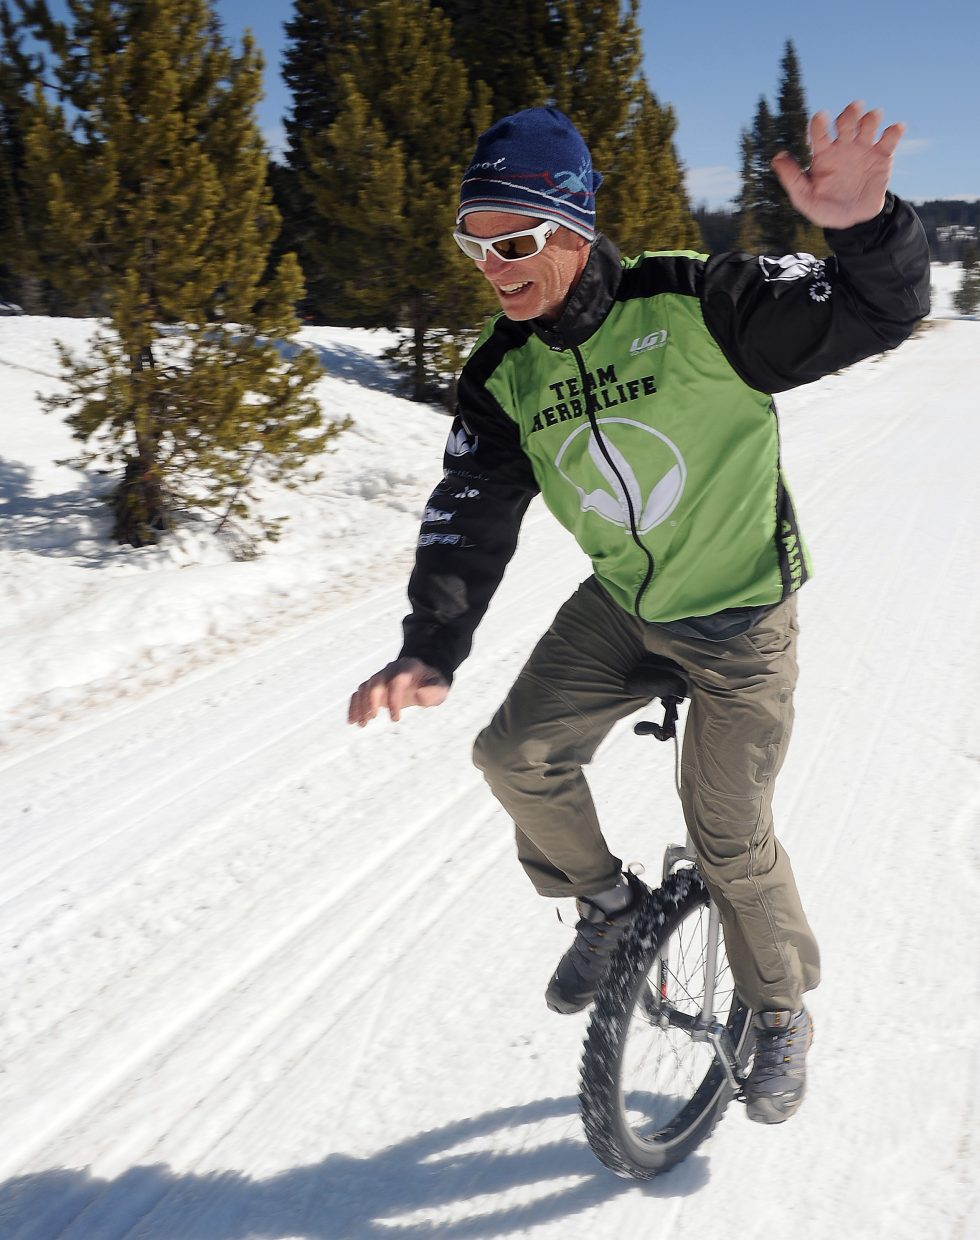 Why include the option to ride a unicycle in a ski and snowbike race? Dan Smilkstein said because it's fun. Finding unique ideas like that are among the things that have motivated him to invent yet another big Routt County endurance event. The Steamboat Coureur — with one day dedicated to skiing and the other to snow biking or unicycling — is set for early April.